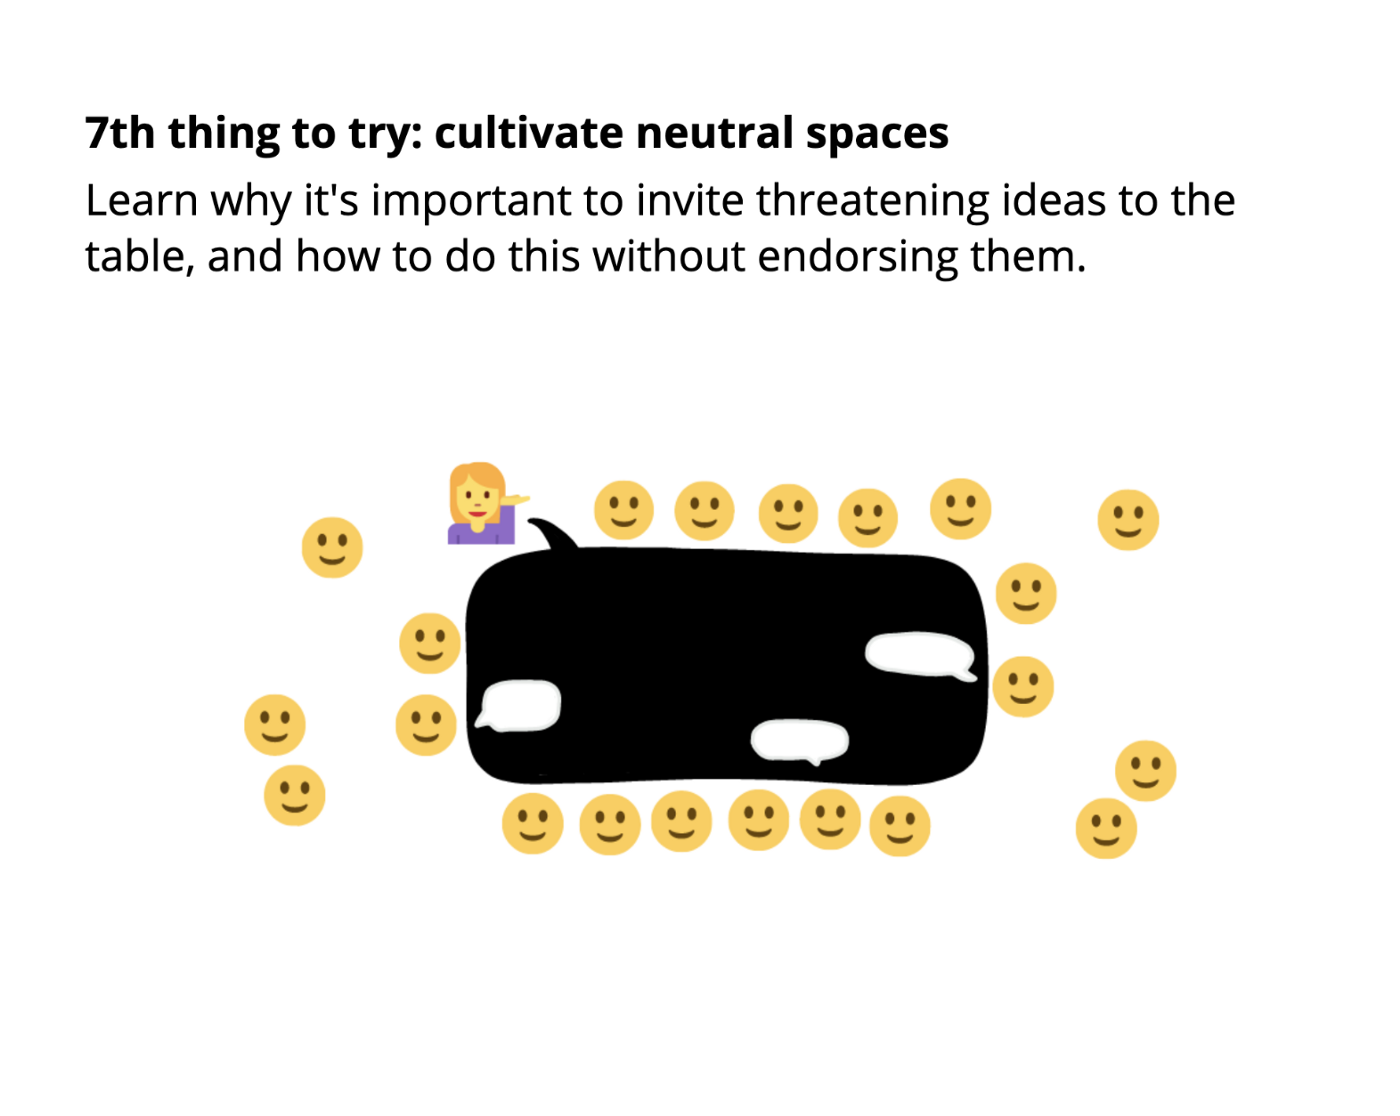 7th thing to try: cultivate neutral spaces